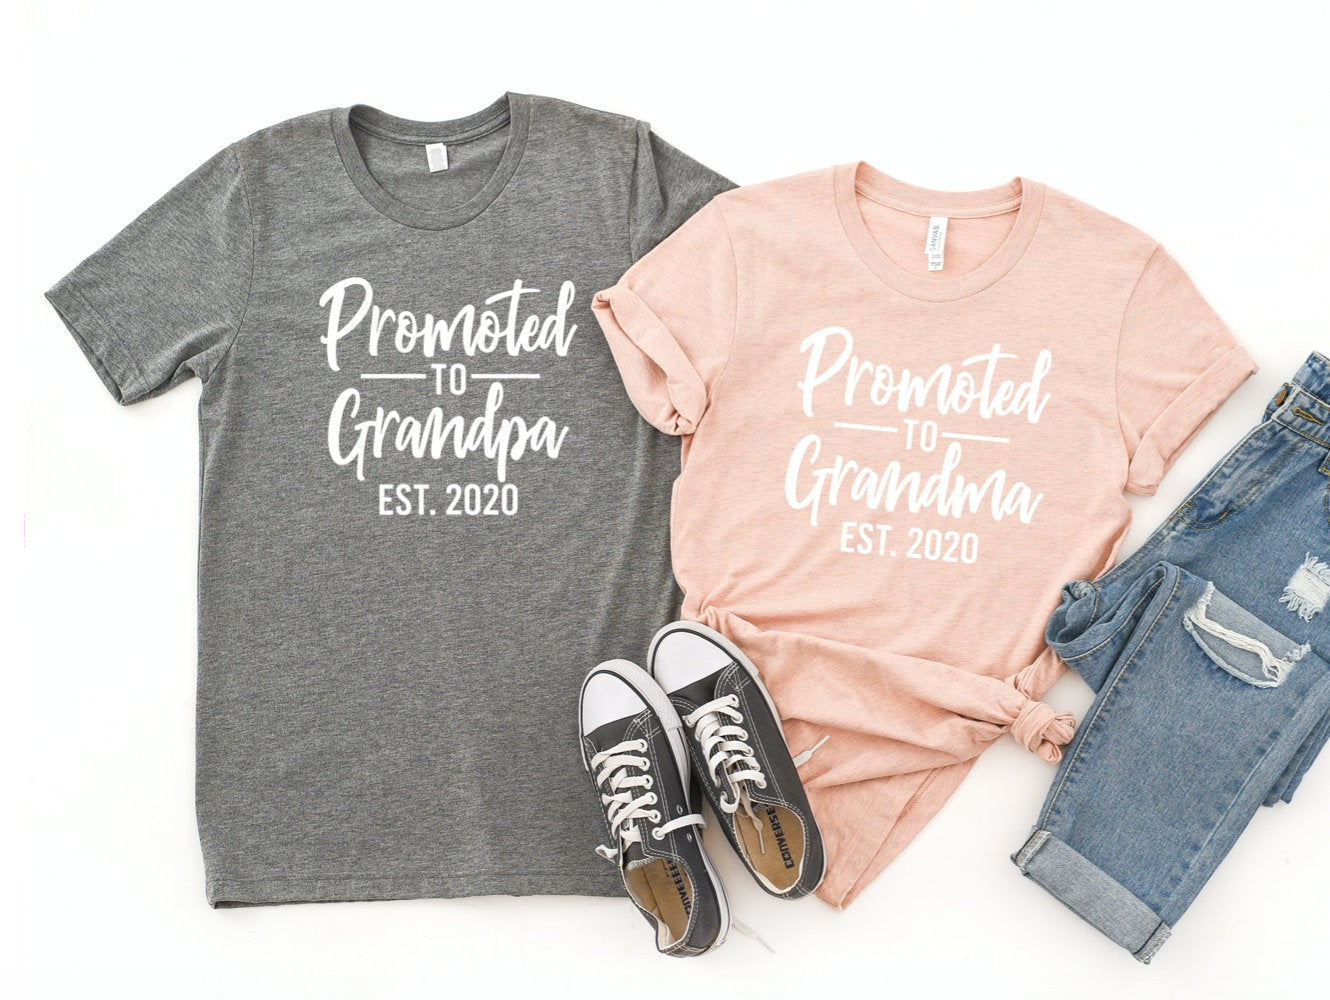 Promoted To Grandpa & Grandpa T-shirt Set